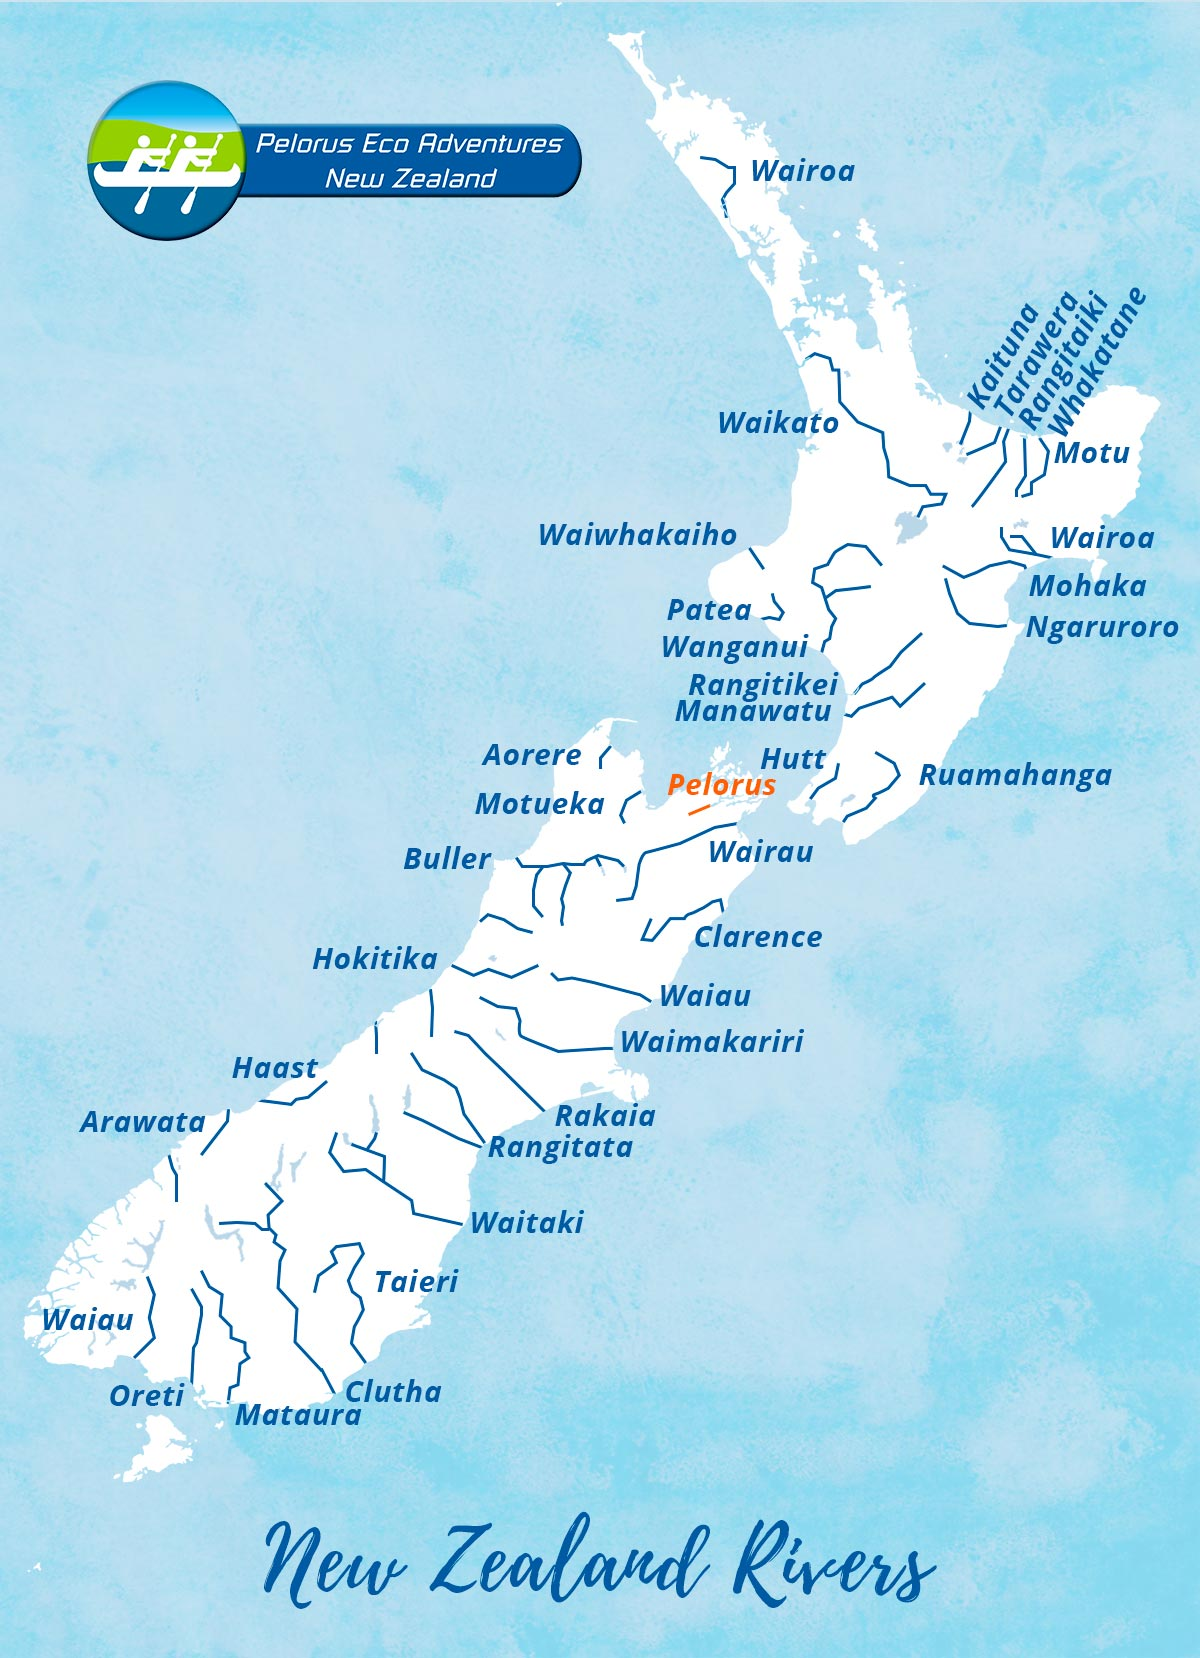 New Zealand rivers map